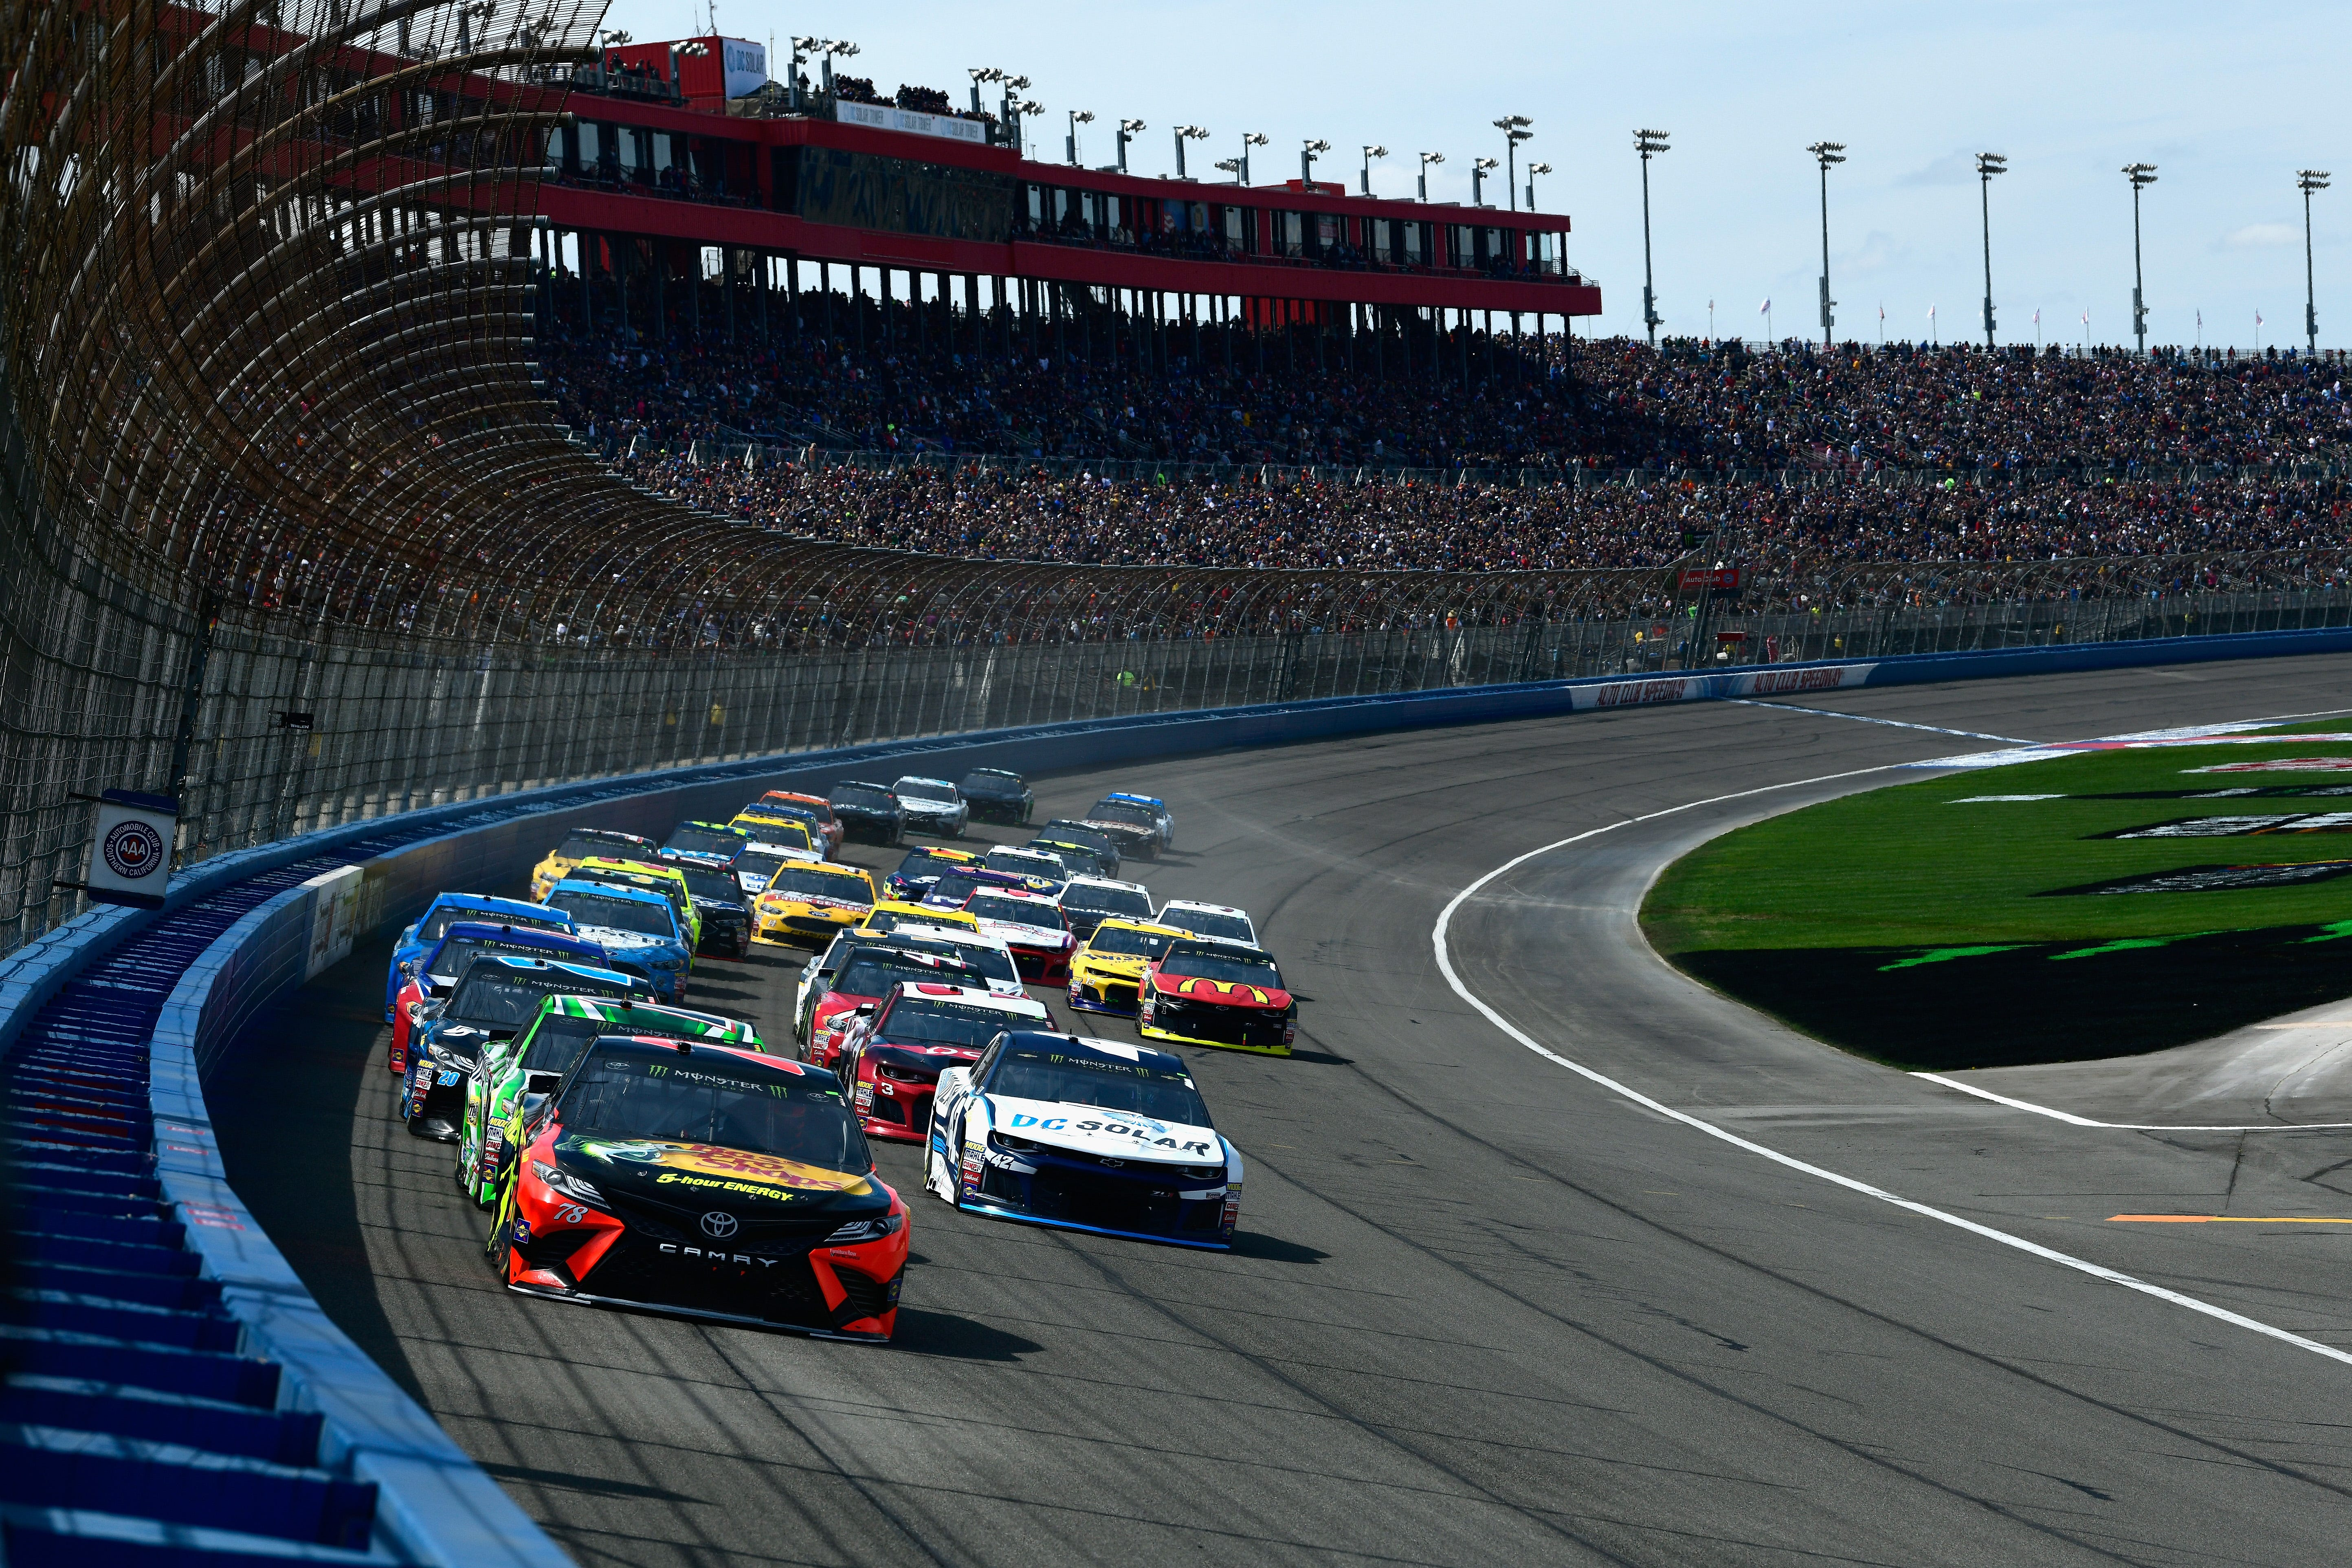 NASCAR Fontana 2019: Schedule, lineup, TV and weather information for Auto Club 400